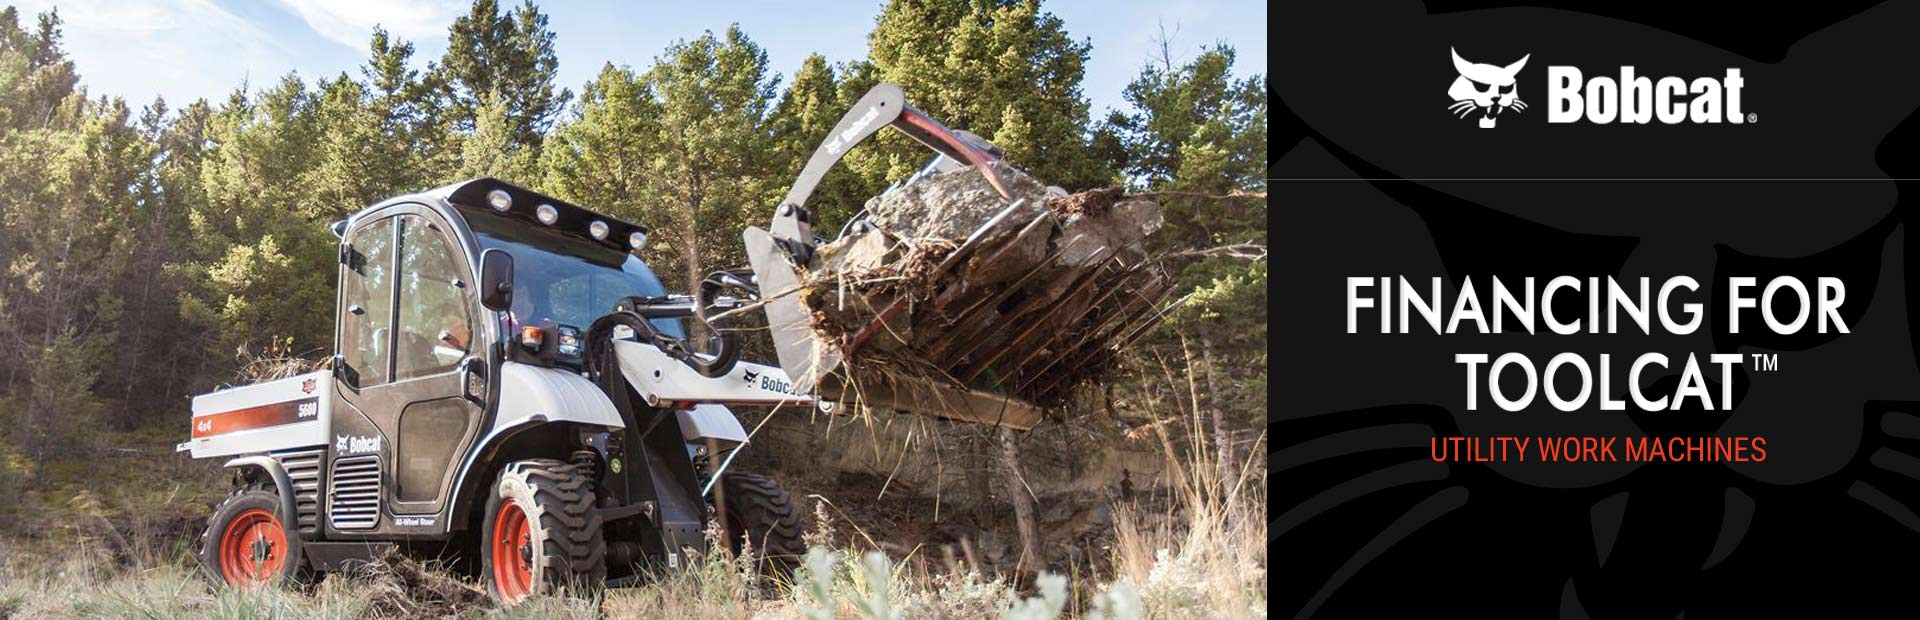 Bobcat: Financing for Toolcat™ Utility Work Machines